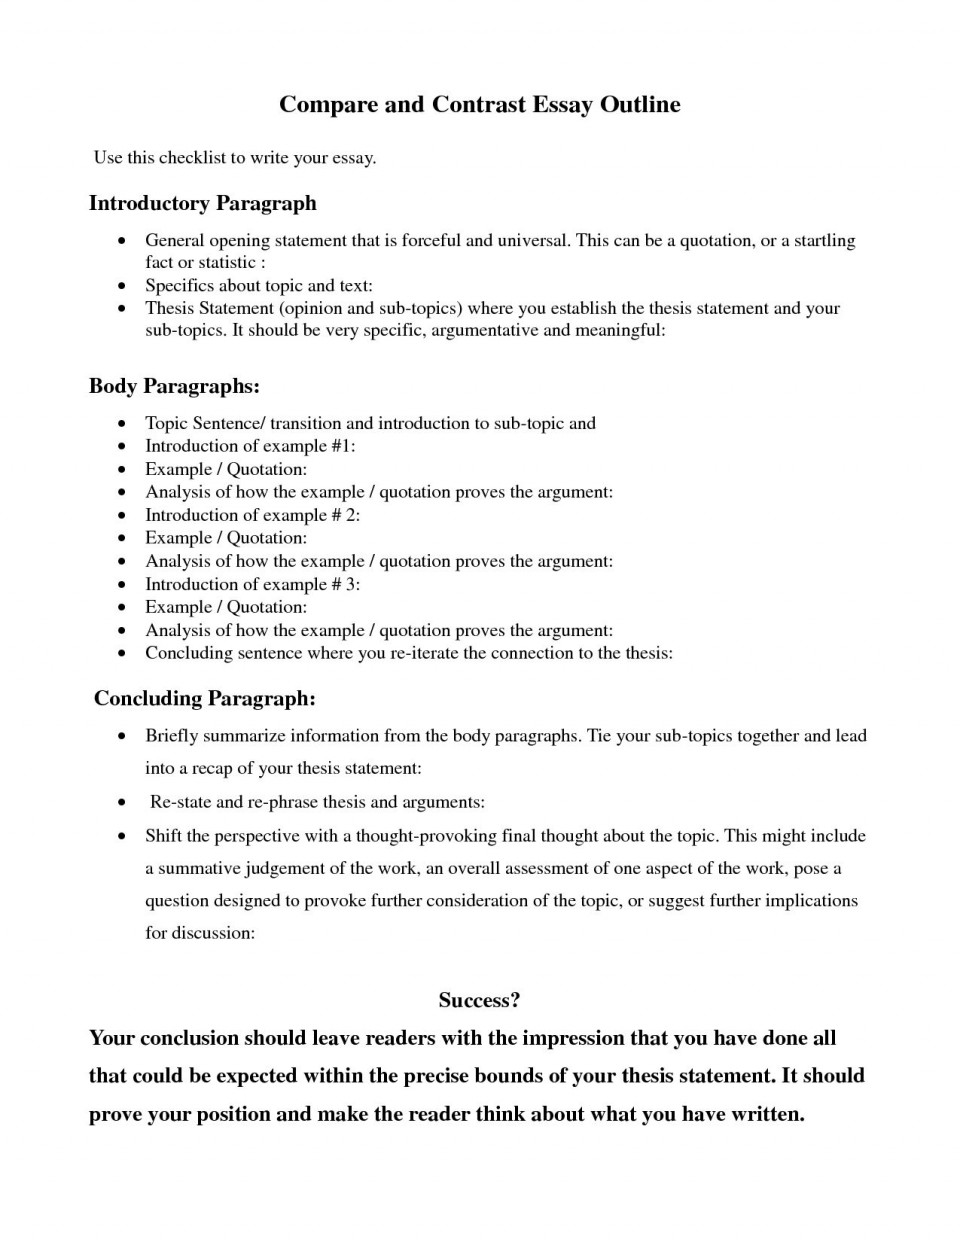 007 Astounding Compare And Contrast Essay Example College High Definition  For Topic Outline960